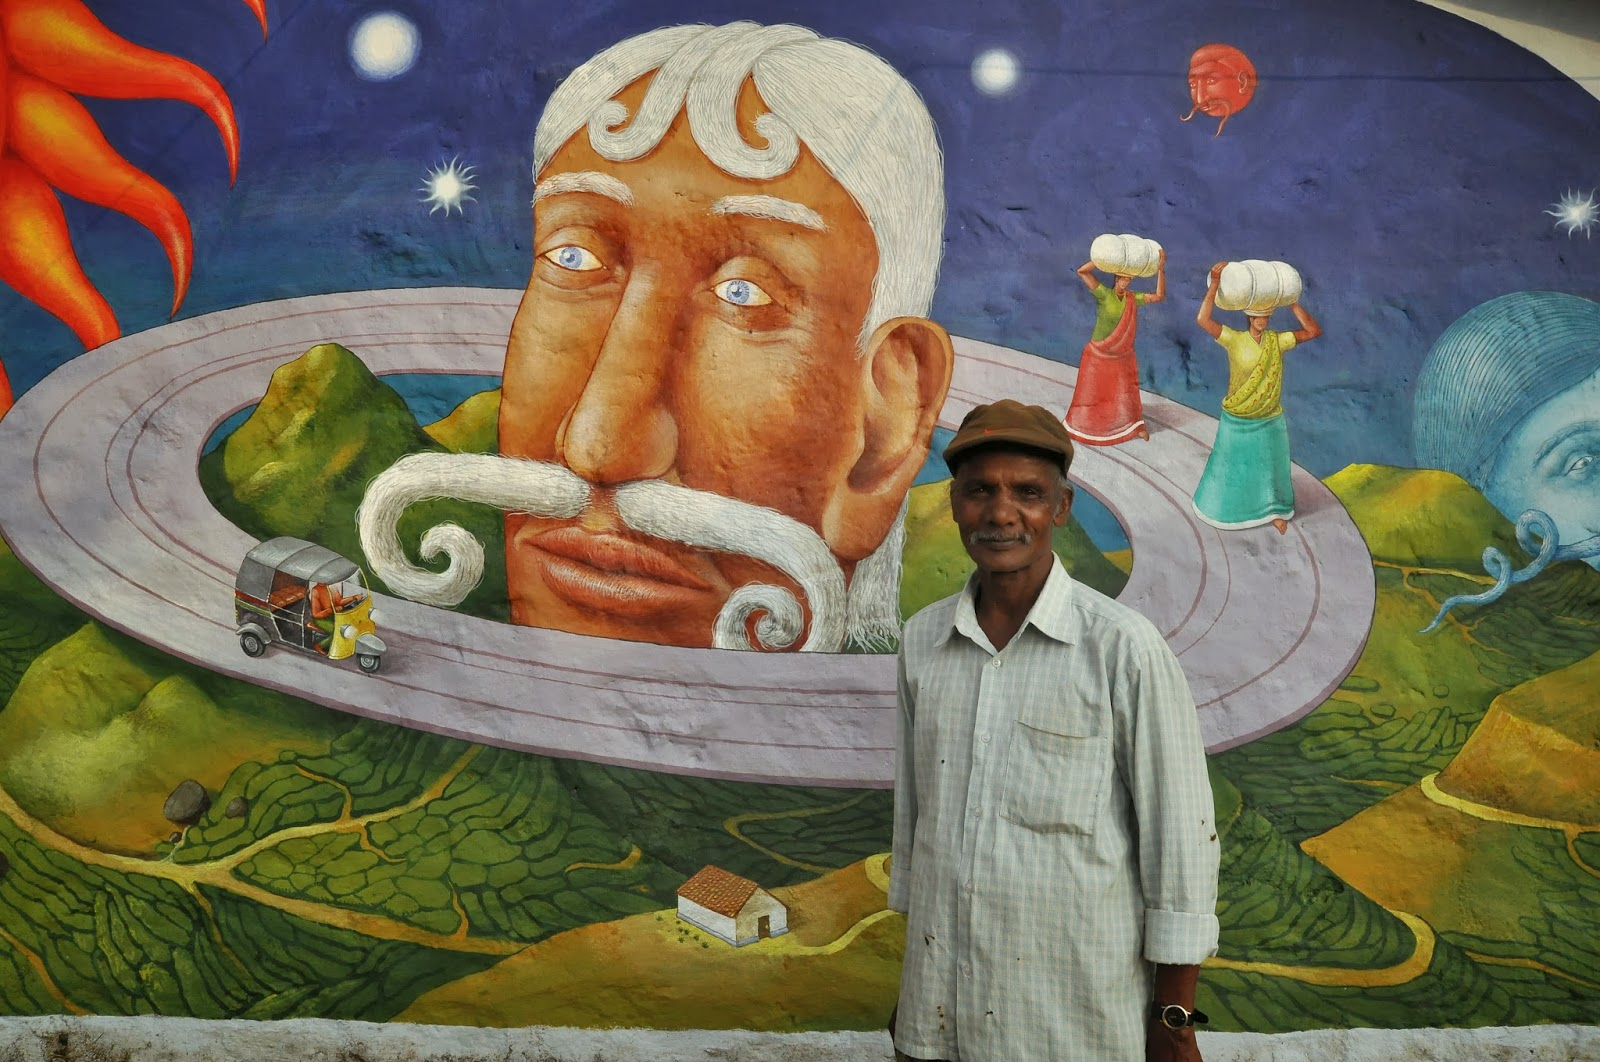 interesni-kazki-visit-of-saturn-new-mural-in-india-12